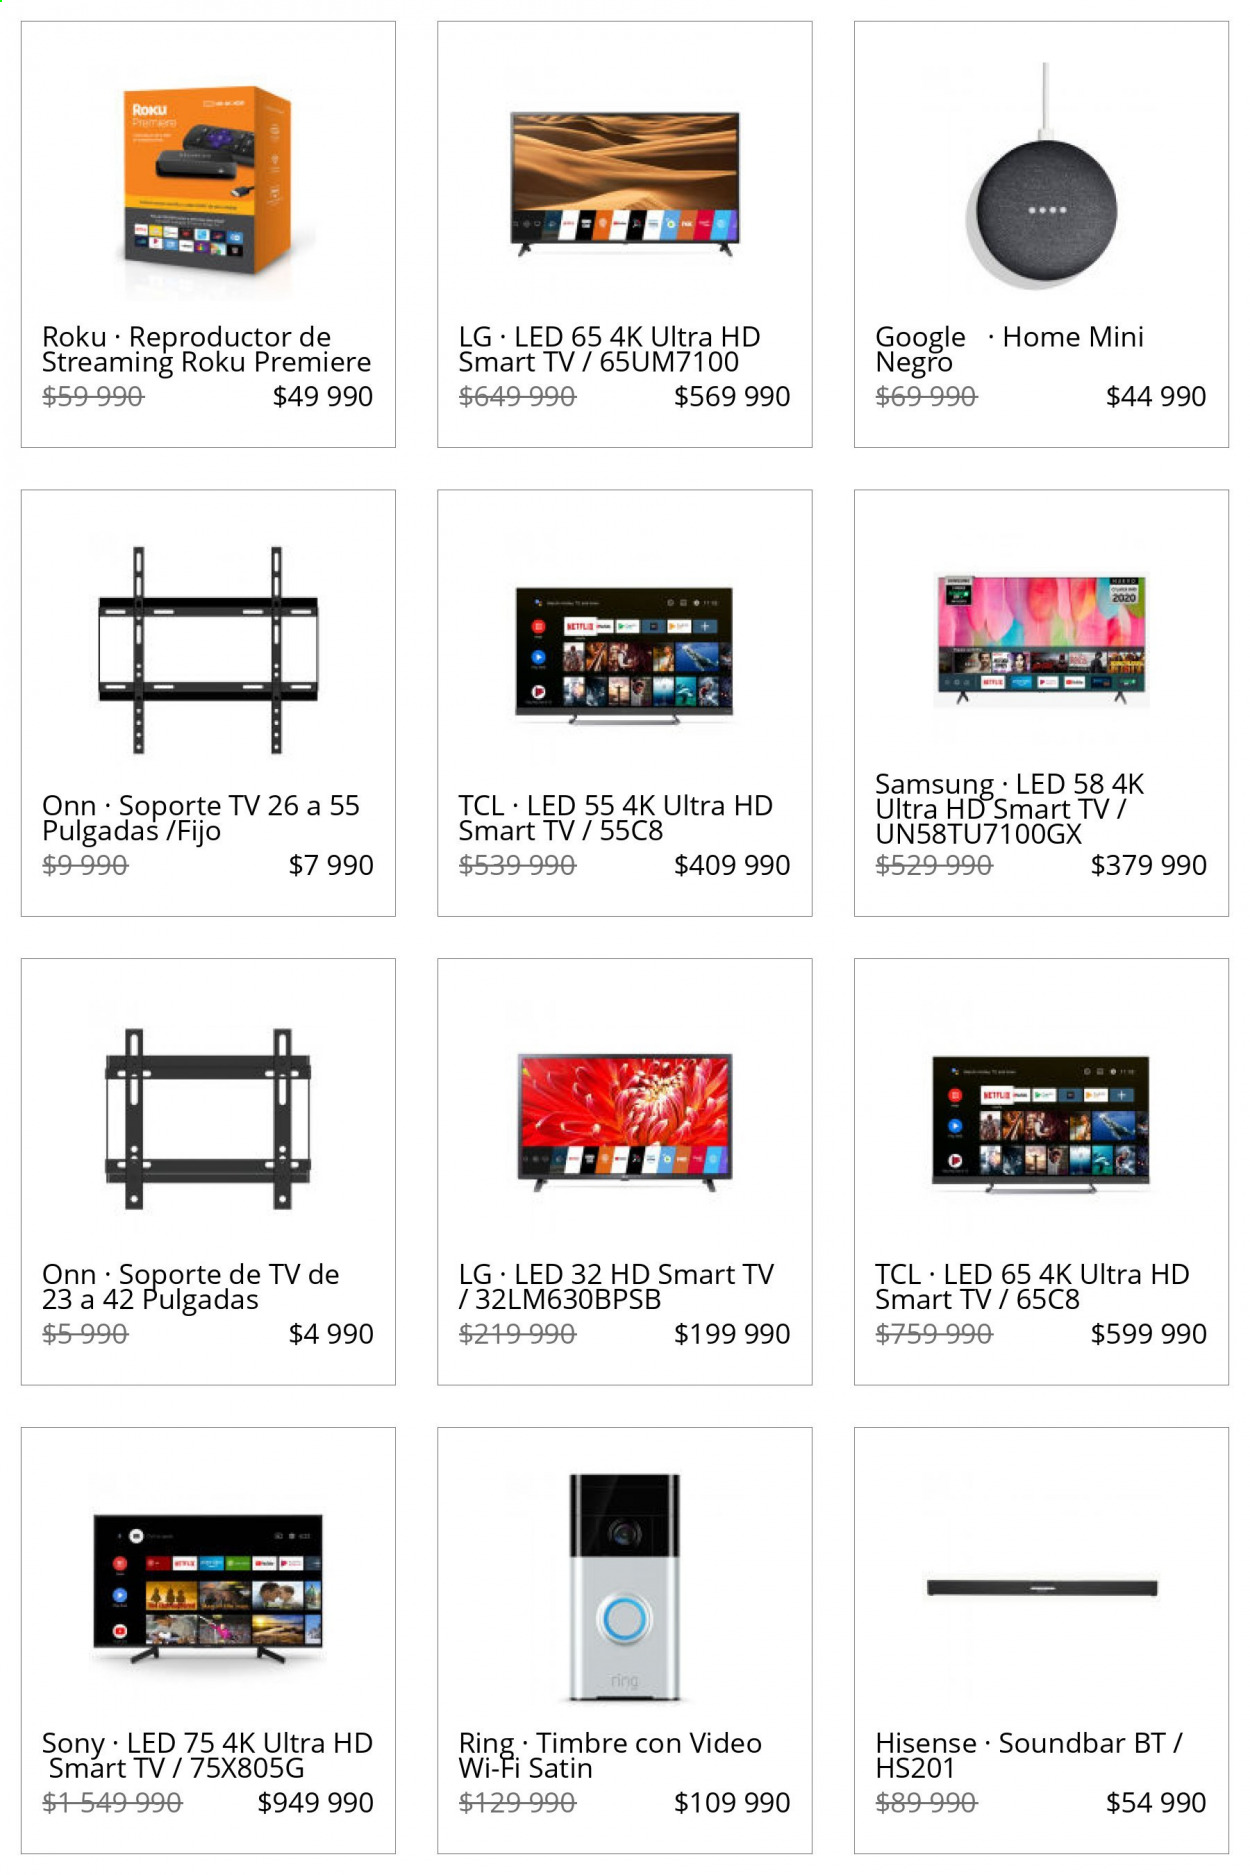 Catálogo Lider - Ventas - led, google, hisense, lg, reproductor, smart tv, sony, soporte tv, soundbar, ultra hd, wifi, Samsung. Página 1.